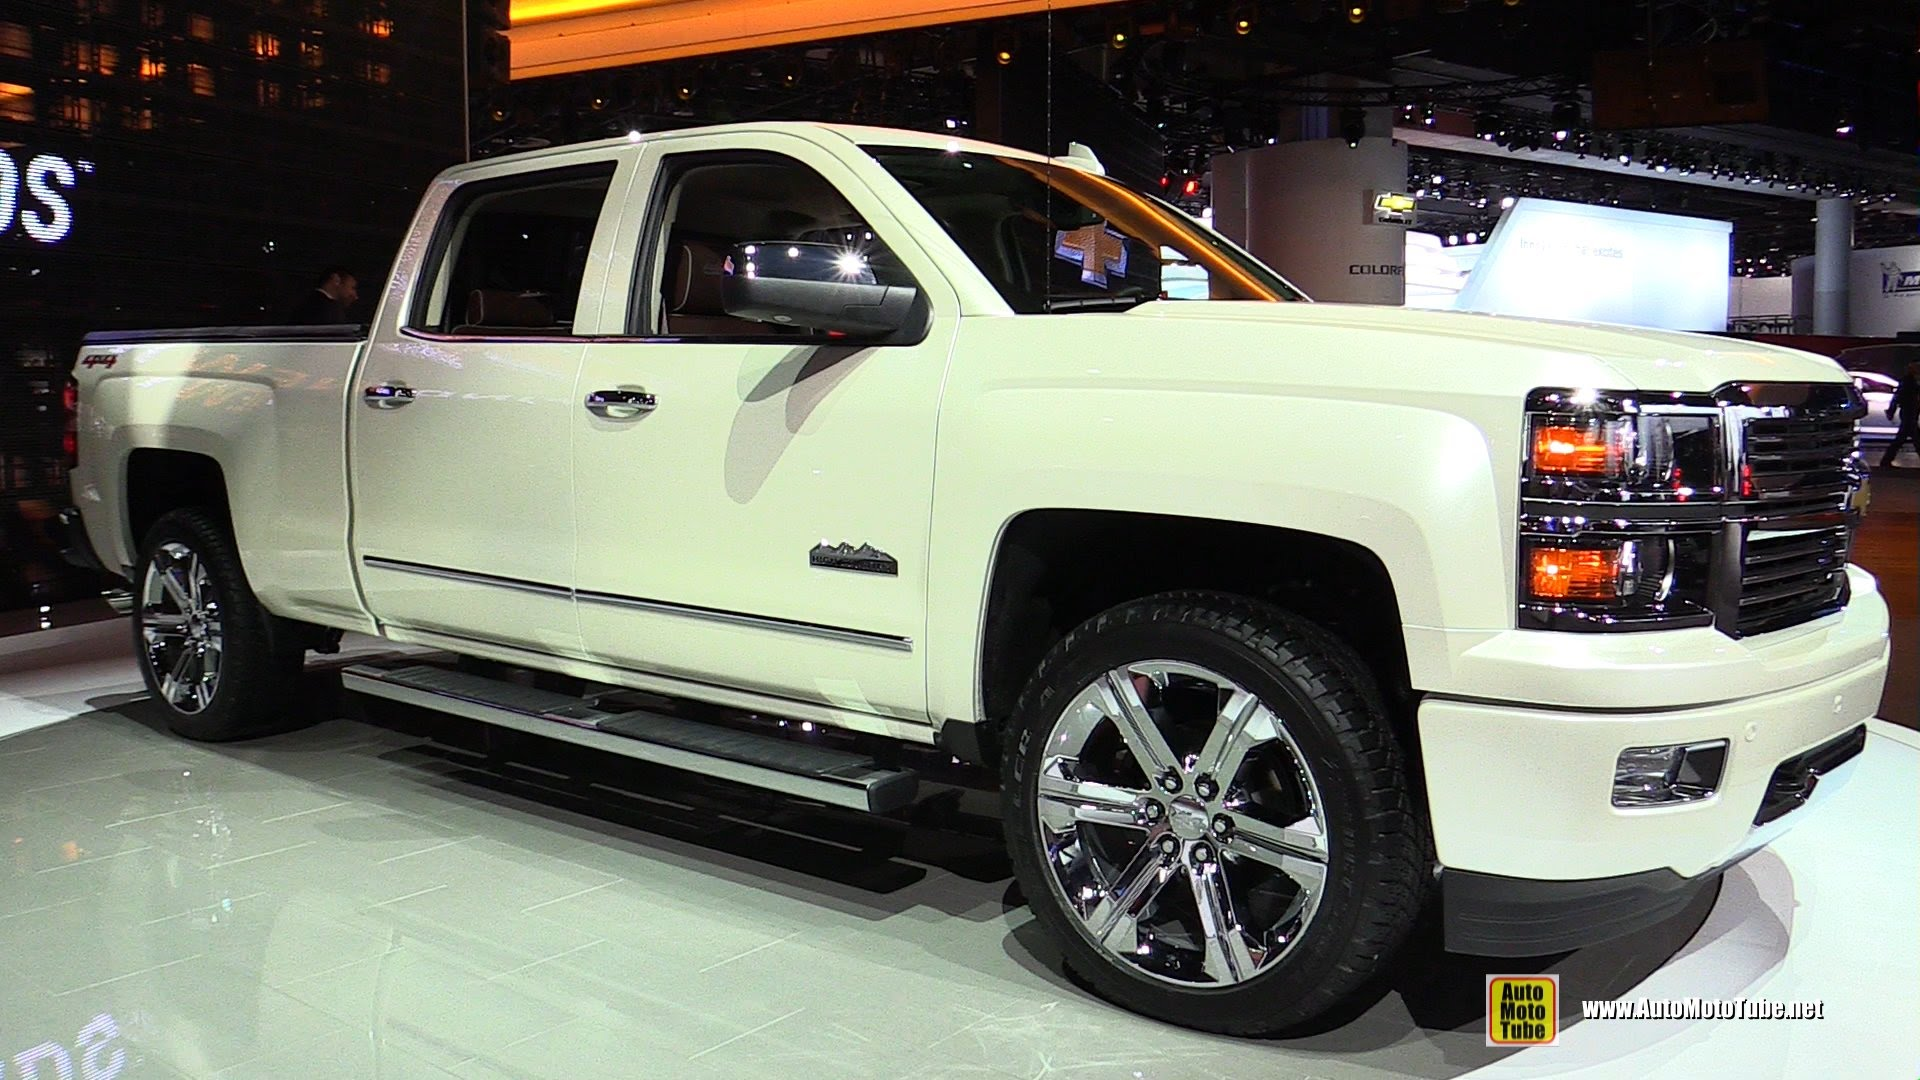 2015 Chevrolet Silverado High Country - Exterior and Interior Walkaround - 2015 Detroit Auto Show